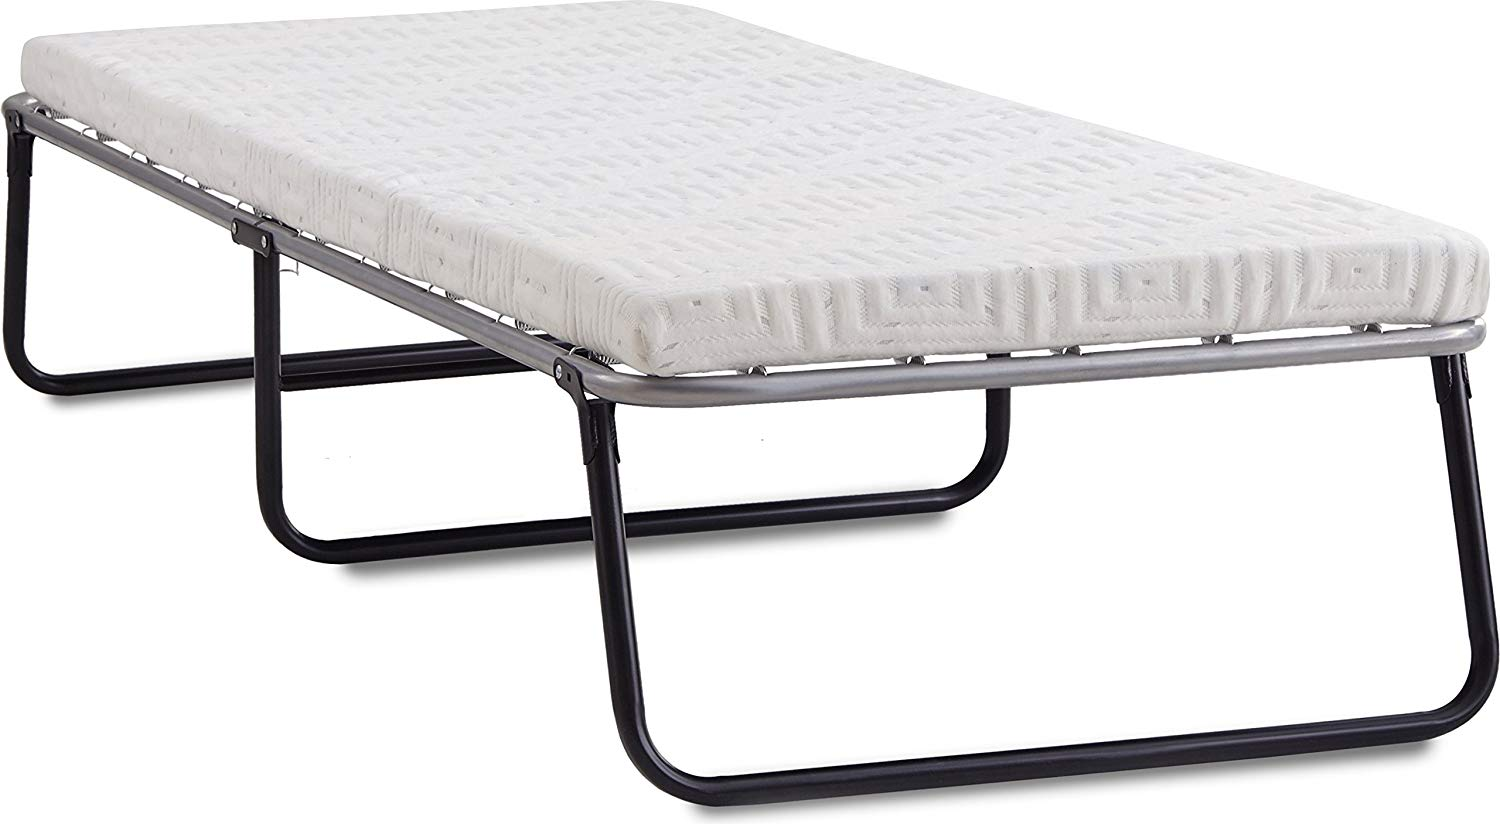 a53c8a43367ec Get Quotations · Broyhill Foldaway Guest Bed  Folding Steel Frame with Gel  Memory Foam Mattress